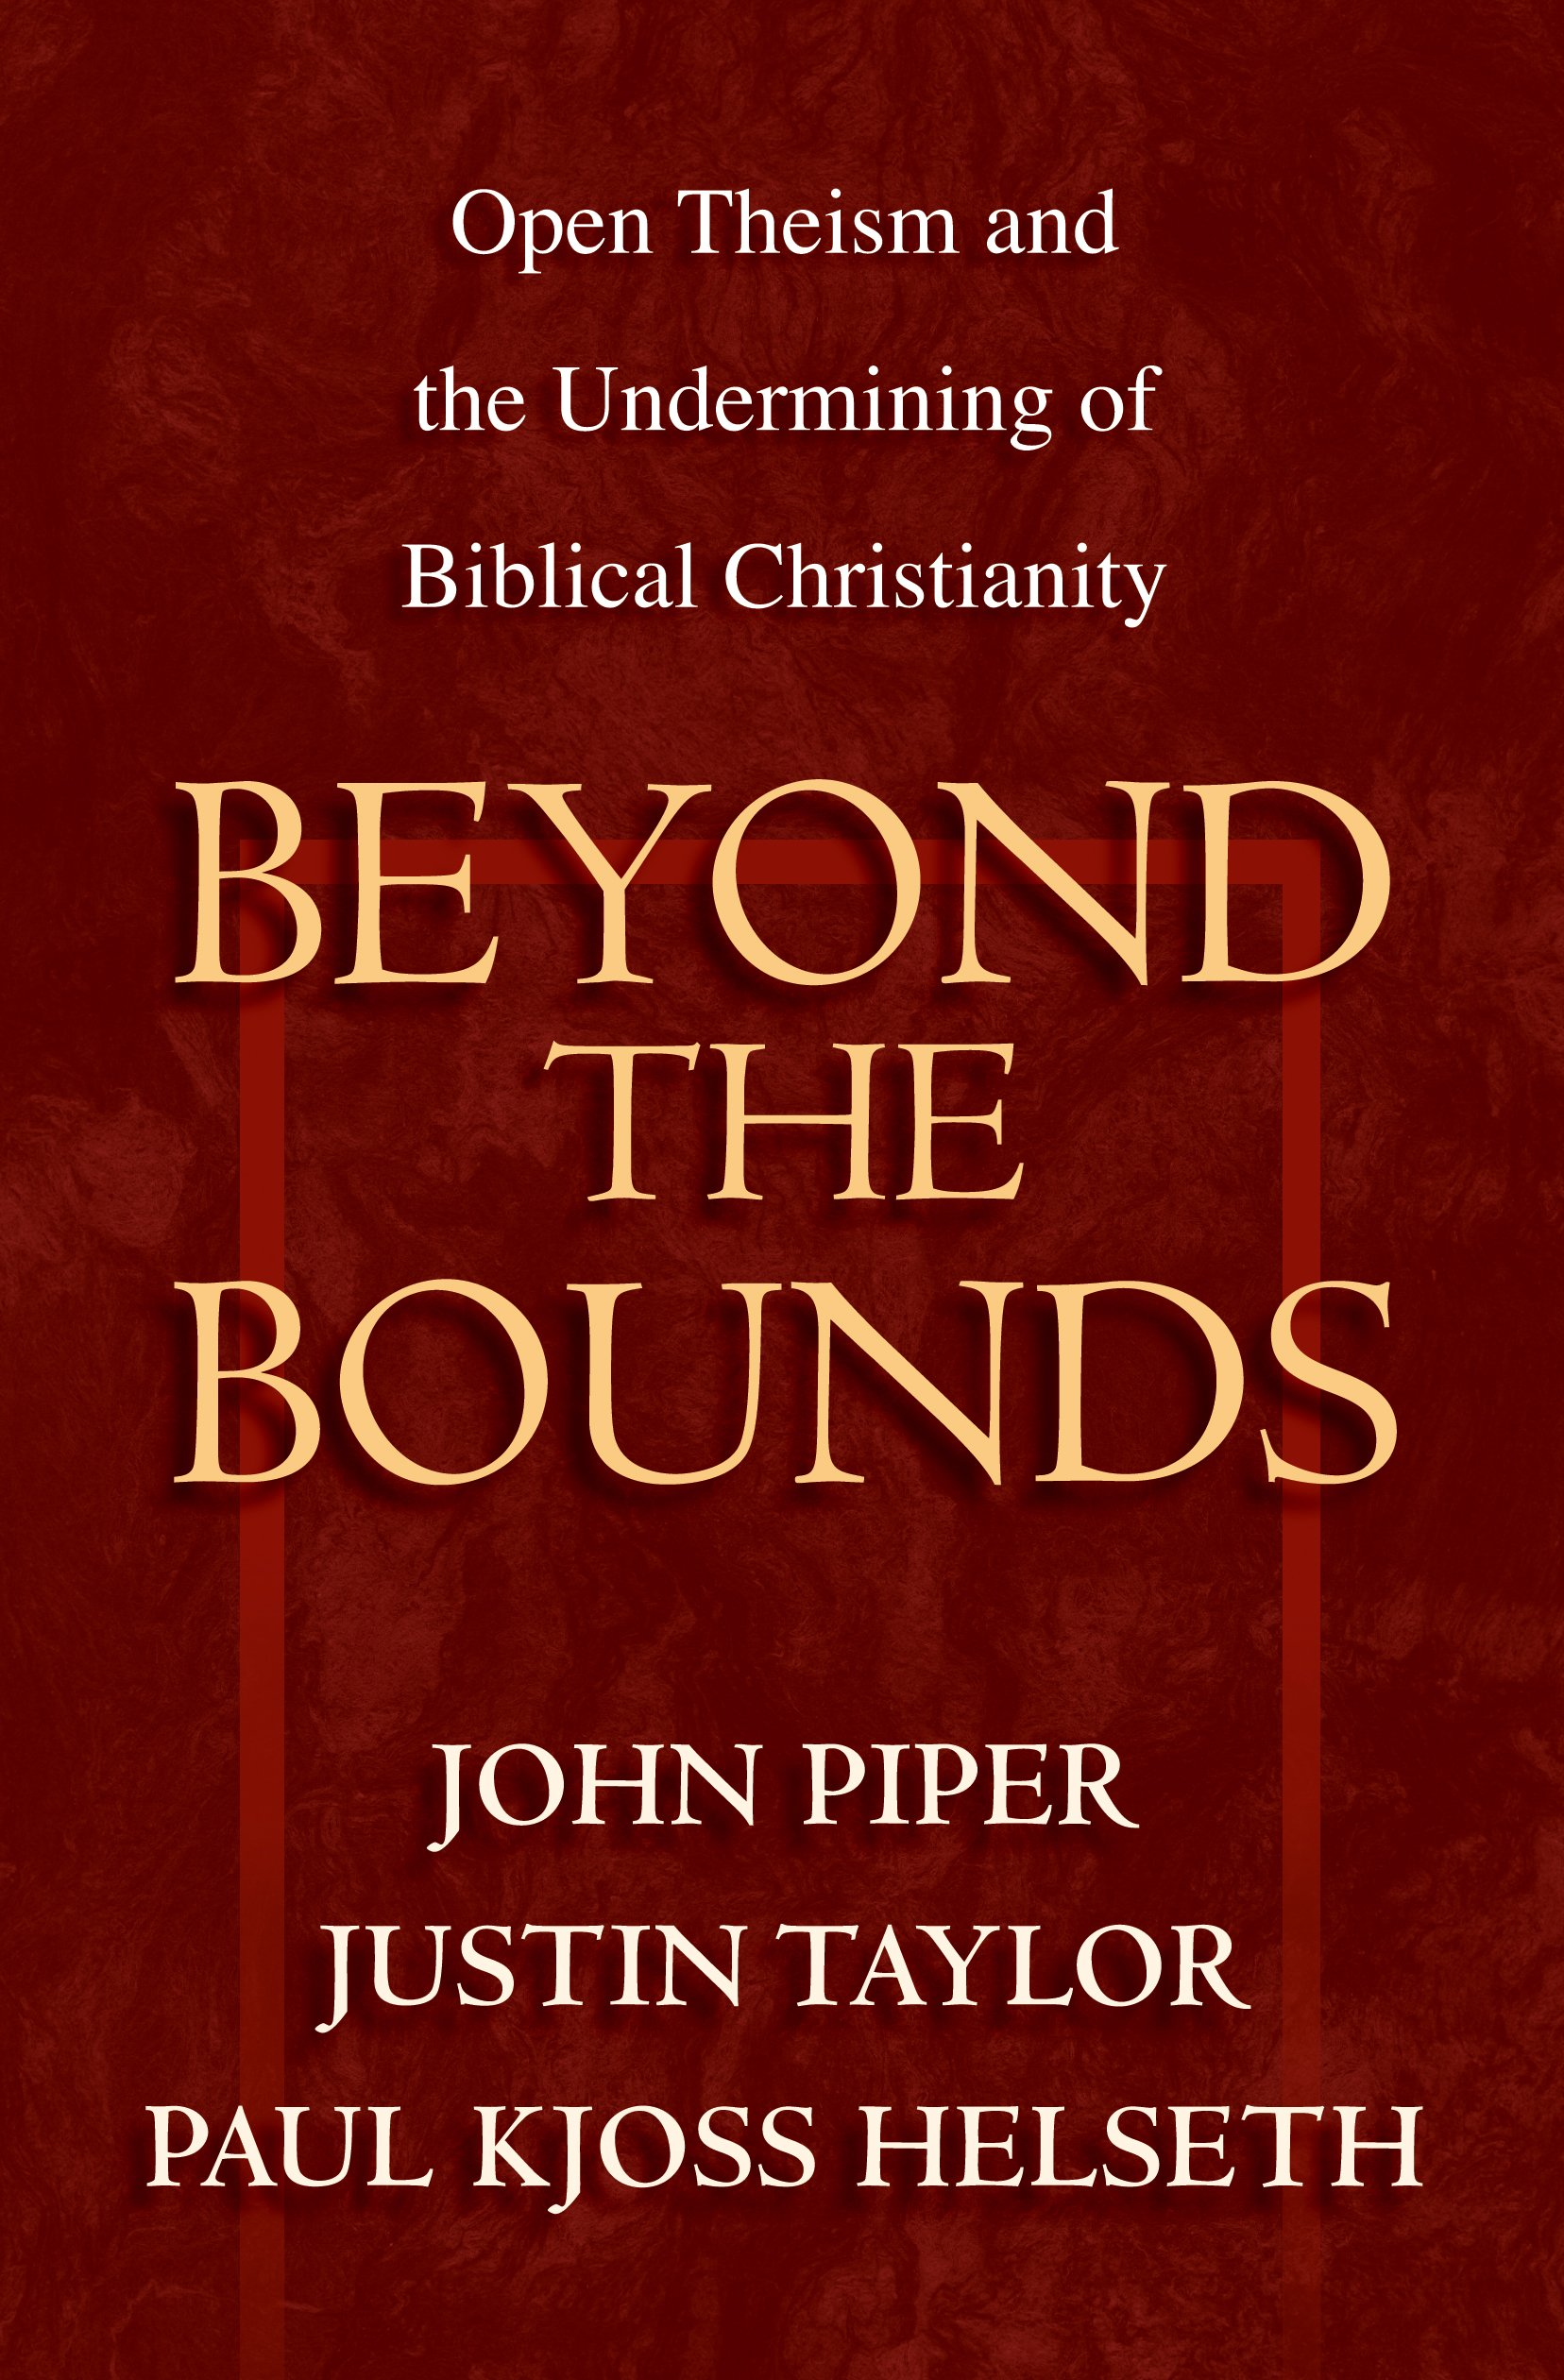 Image result for beyond the bounds book